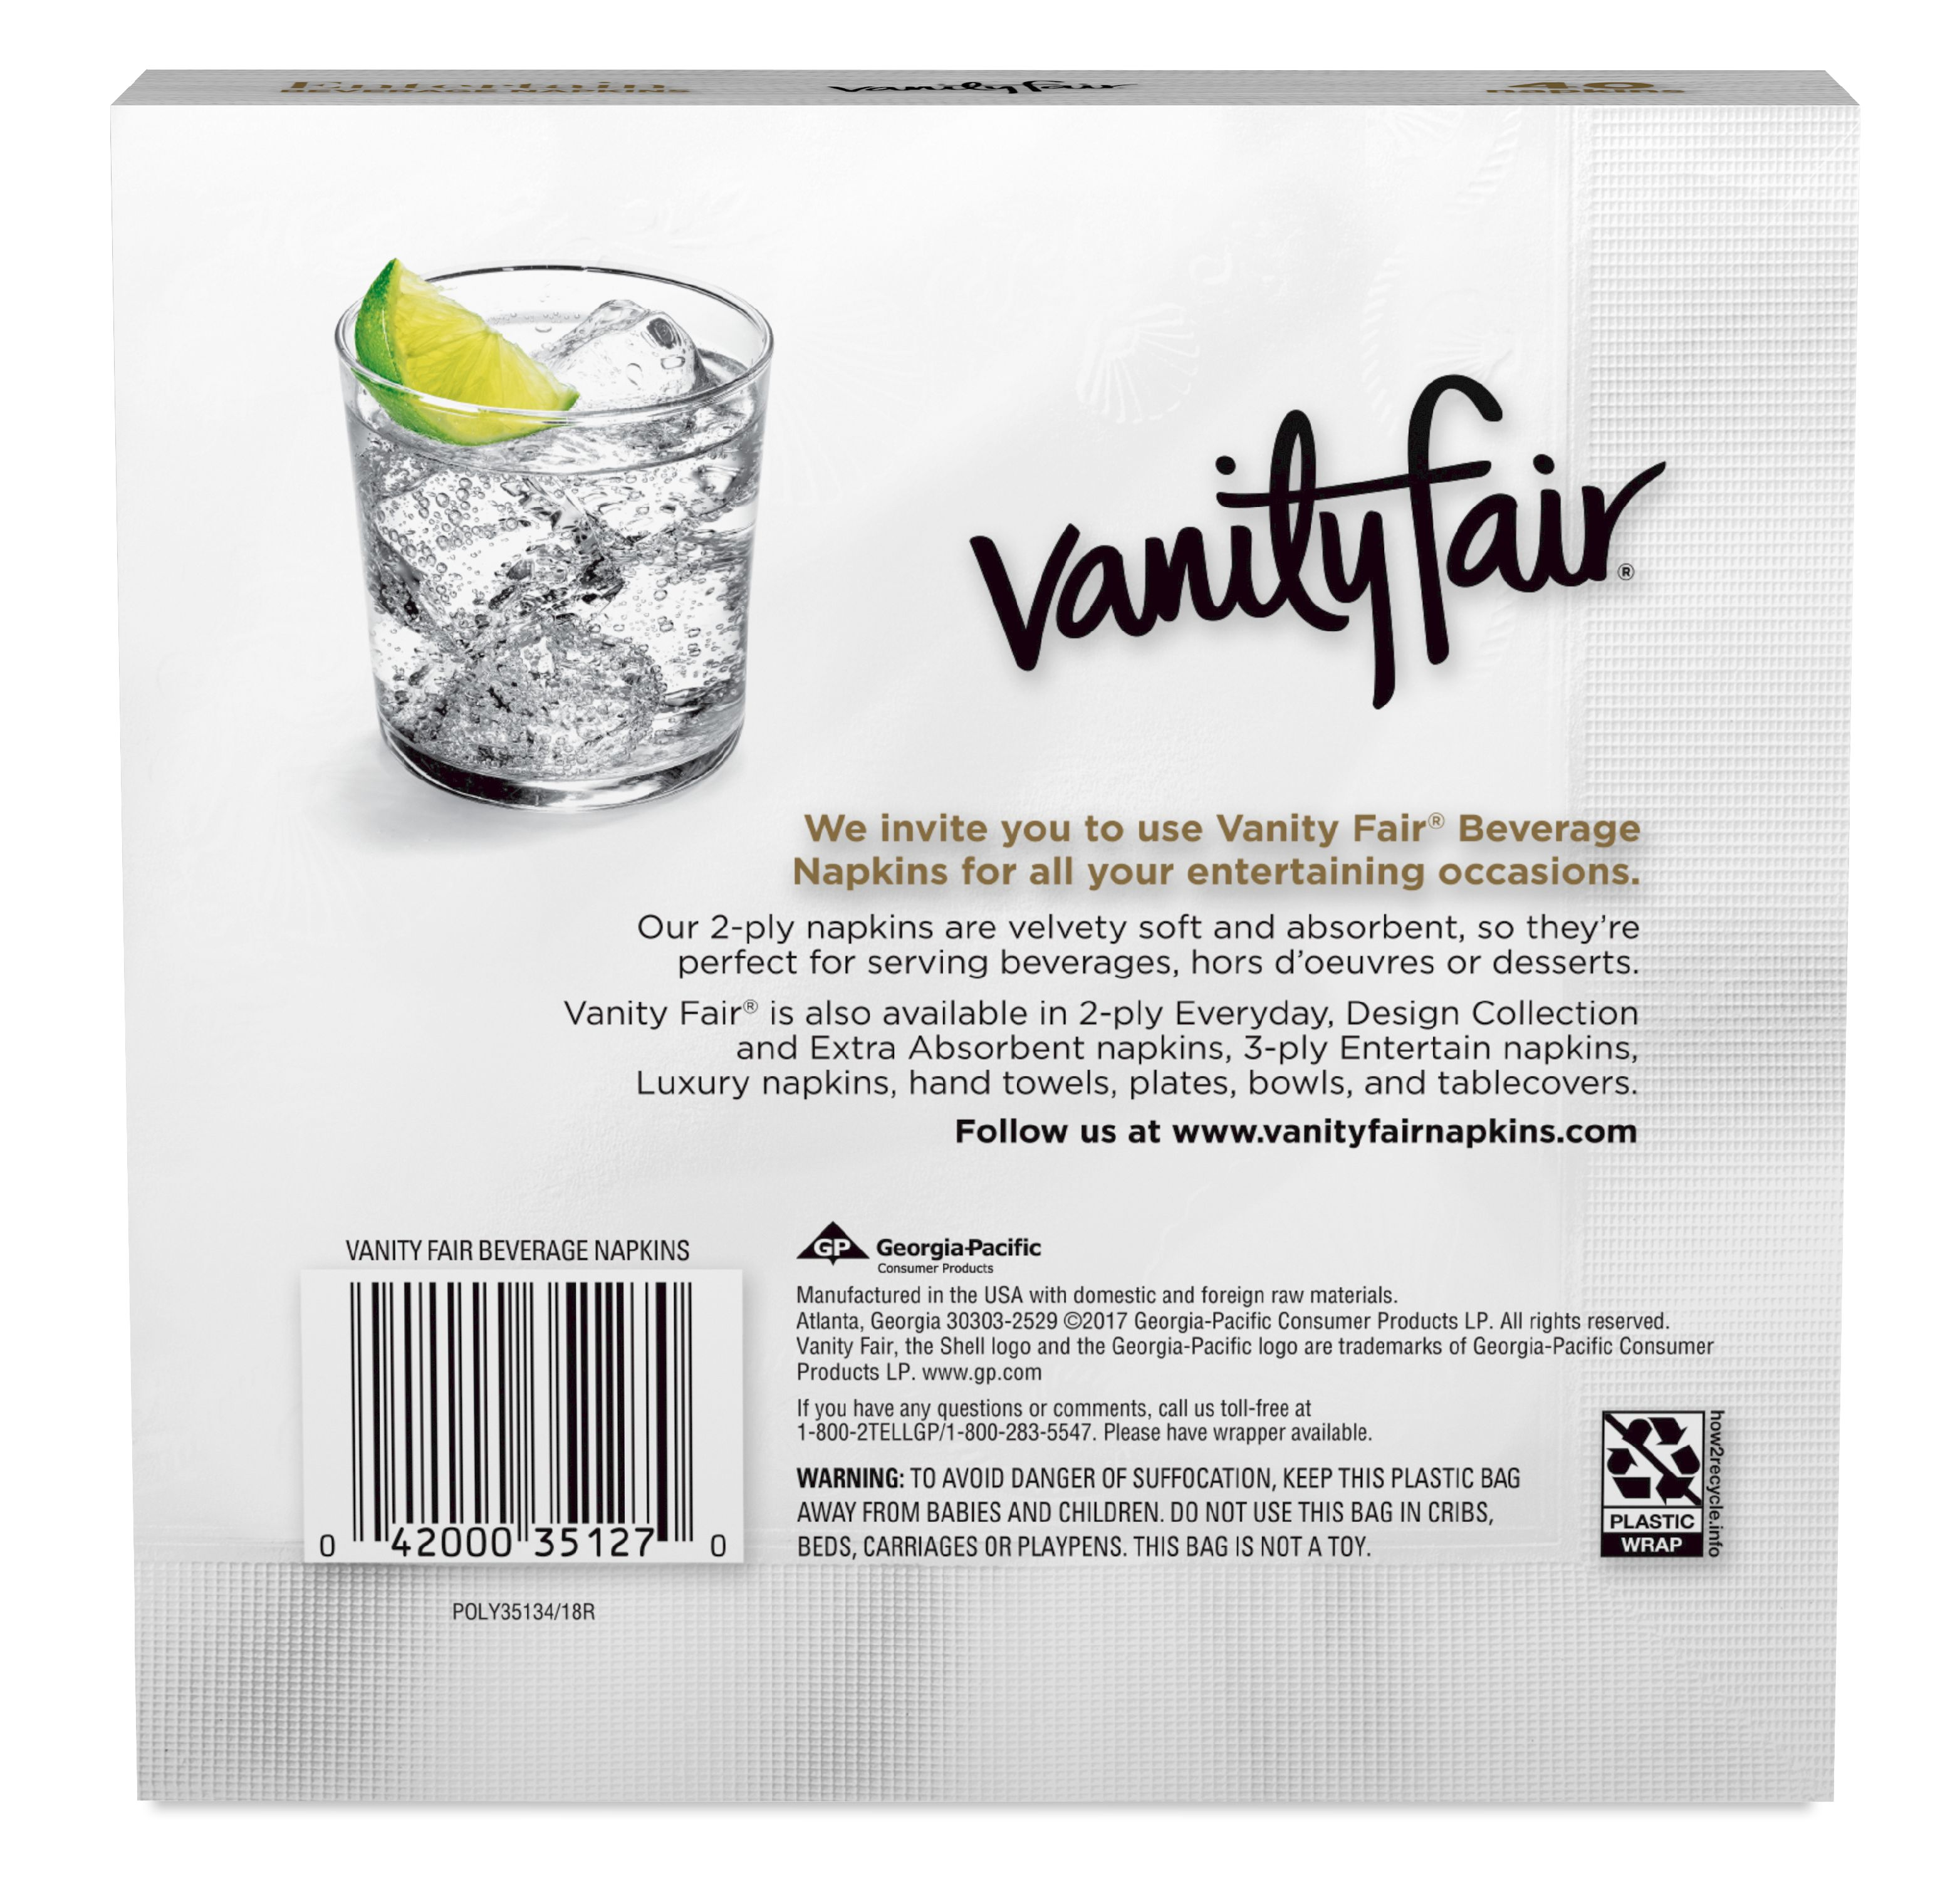 Vanity Fair Beverage Paper Napkins 2-ply White 40ct Image 2 of 5  sc 1 st  Walmart : vanity fair disposable plates - pezcame.com